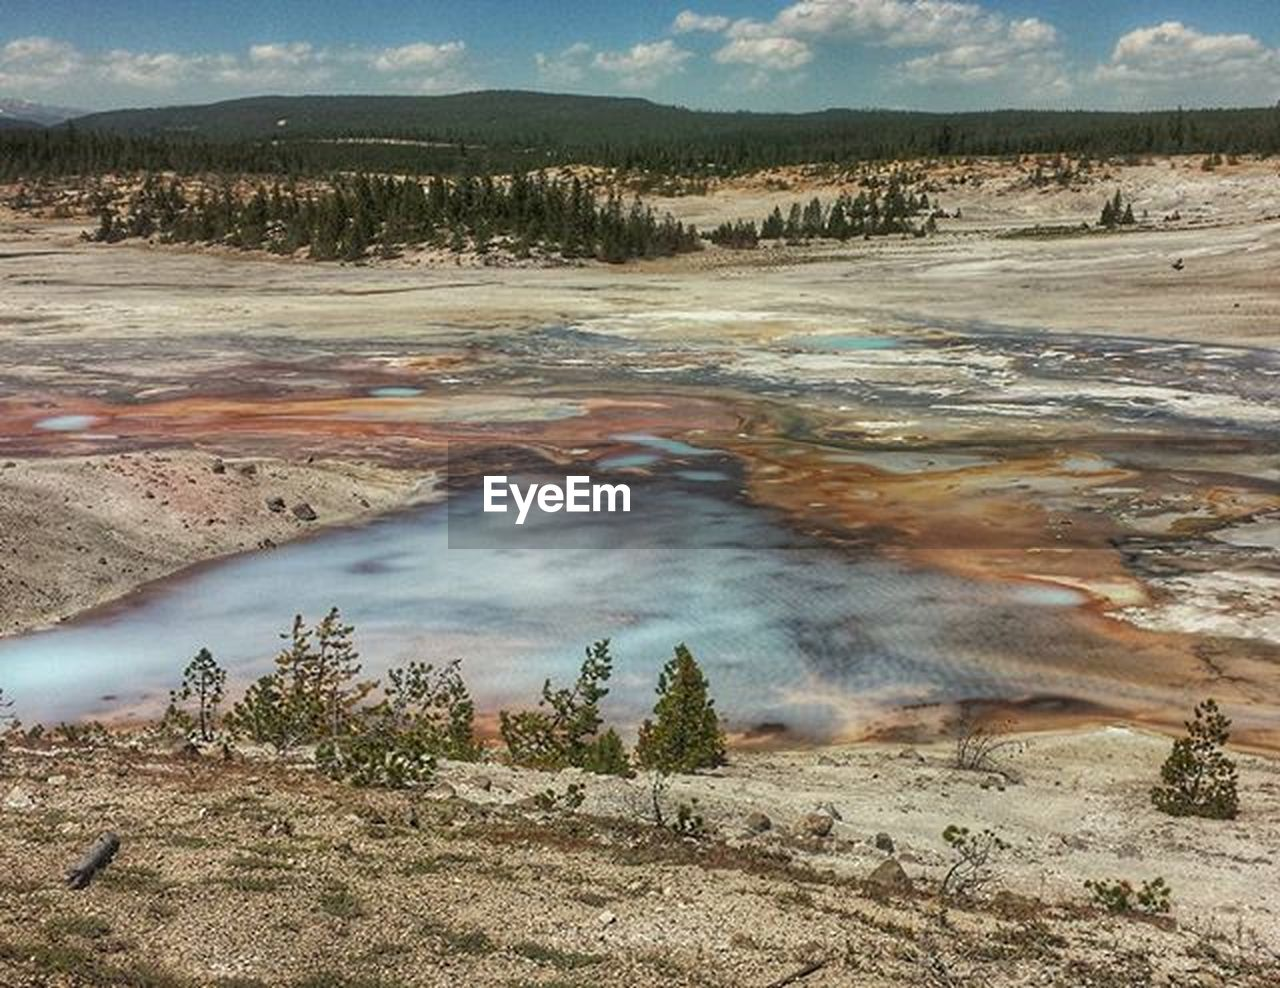 nature, landscape, outdoors, geyser, beauty in nature, scenics, no people, cloud - sky, day, sky, hot spring, travel destinations, tranquil scene, tranquility, mountain, steam, physical geography, water, tree